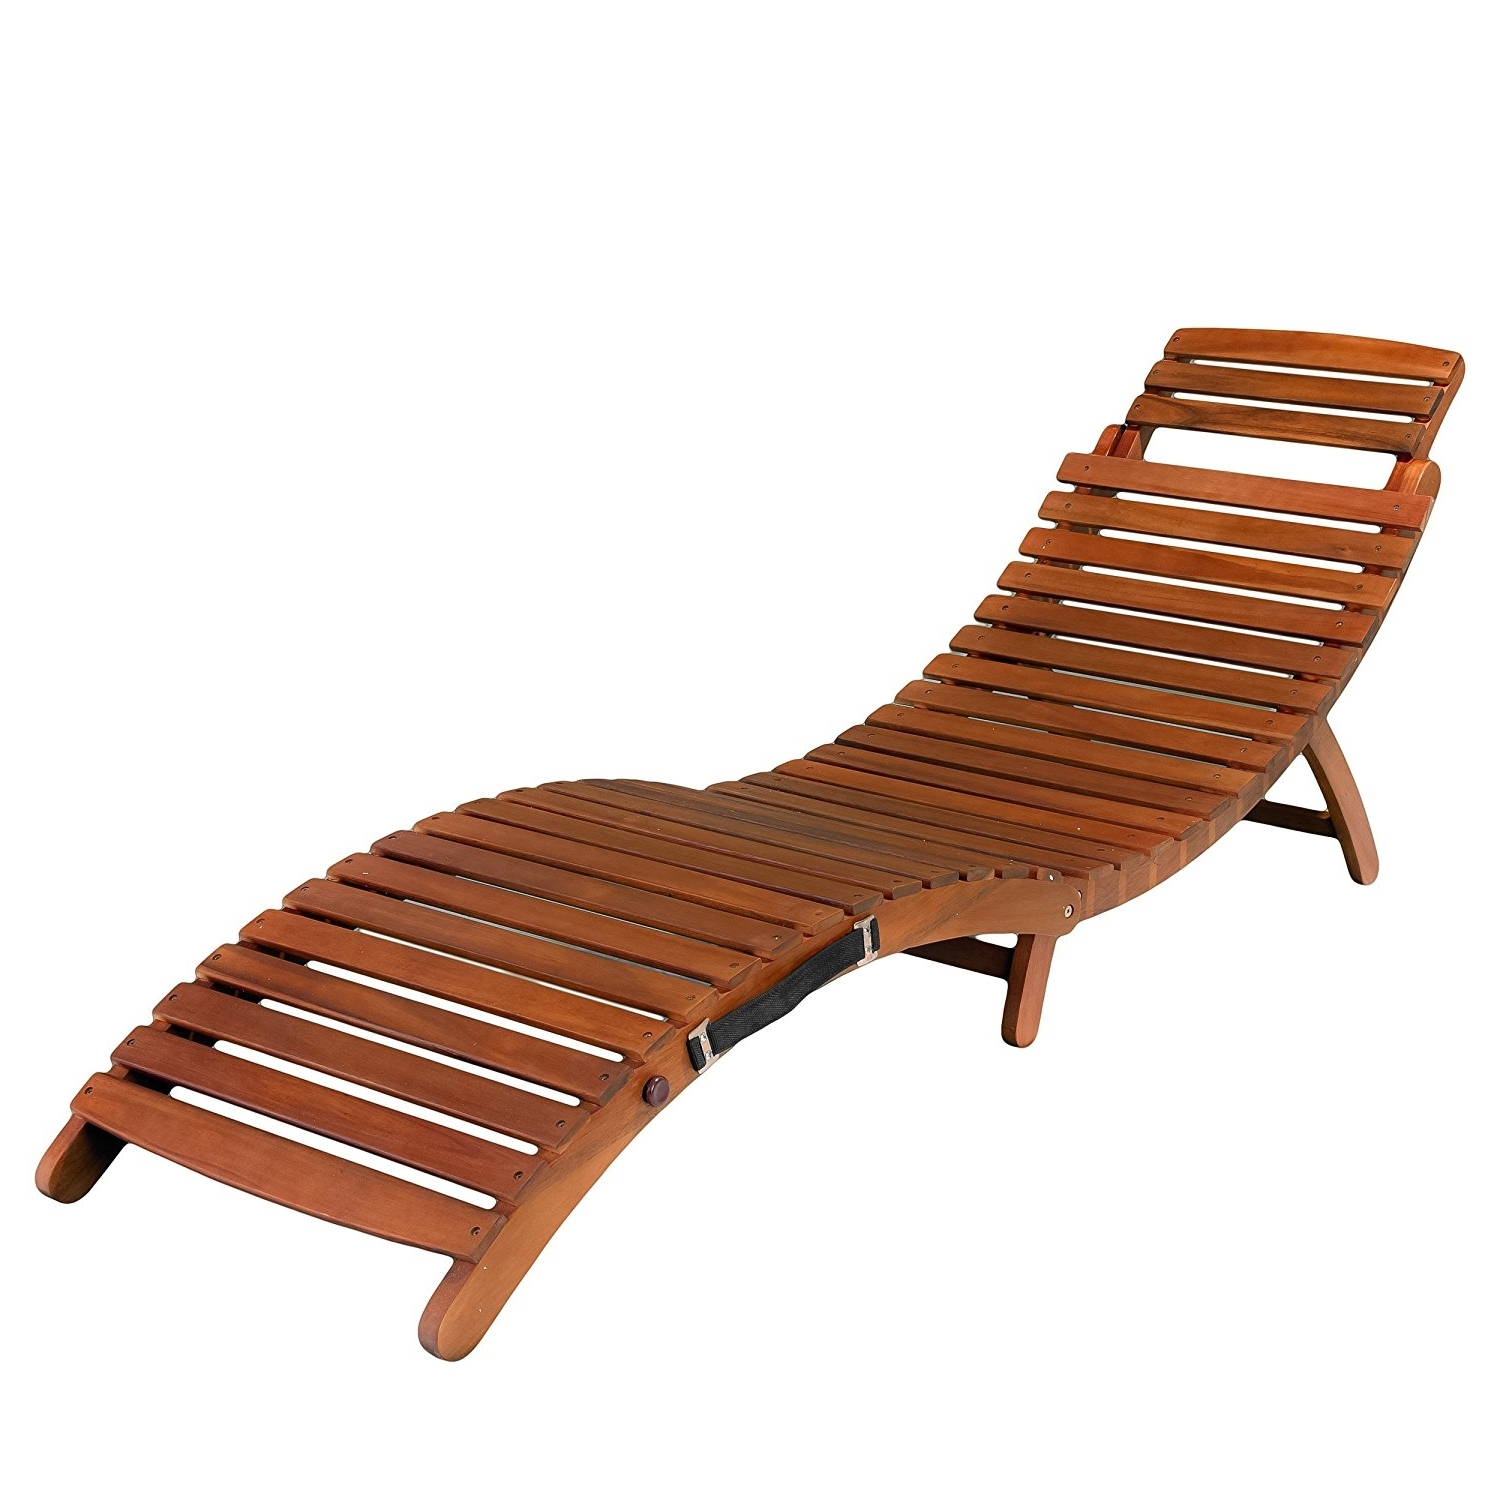 Latest Cheap Folding Chaise Lounge Chairs For Outdoor Within Amazon: Best Selling Del Rio Wood Outdoor Chaise Lounge (View 12 of 15)